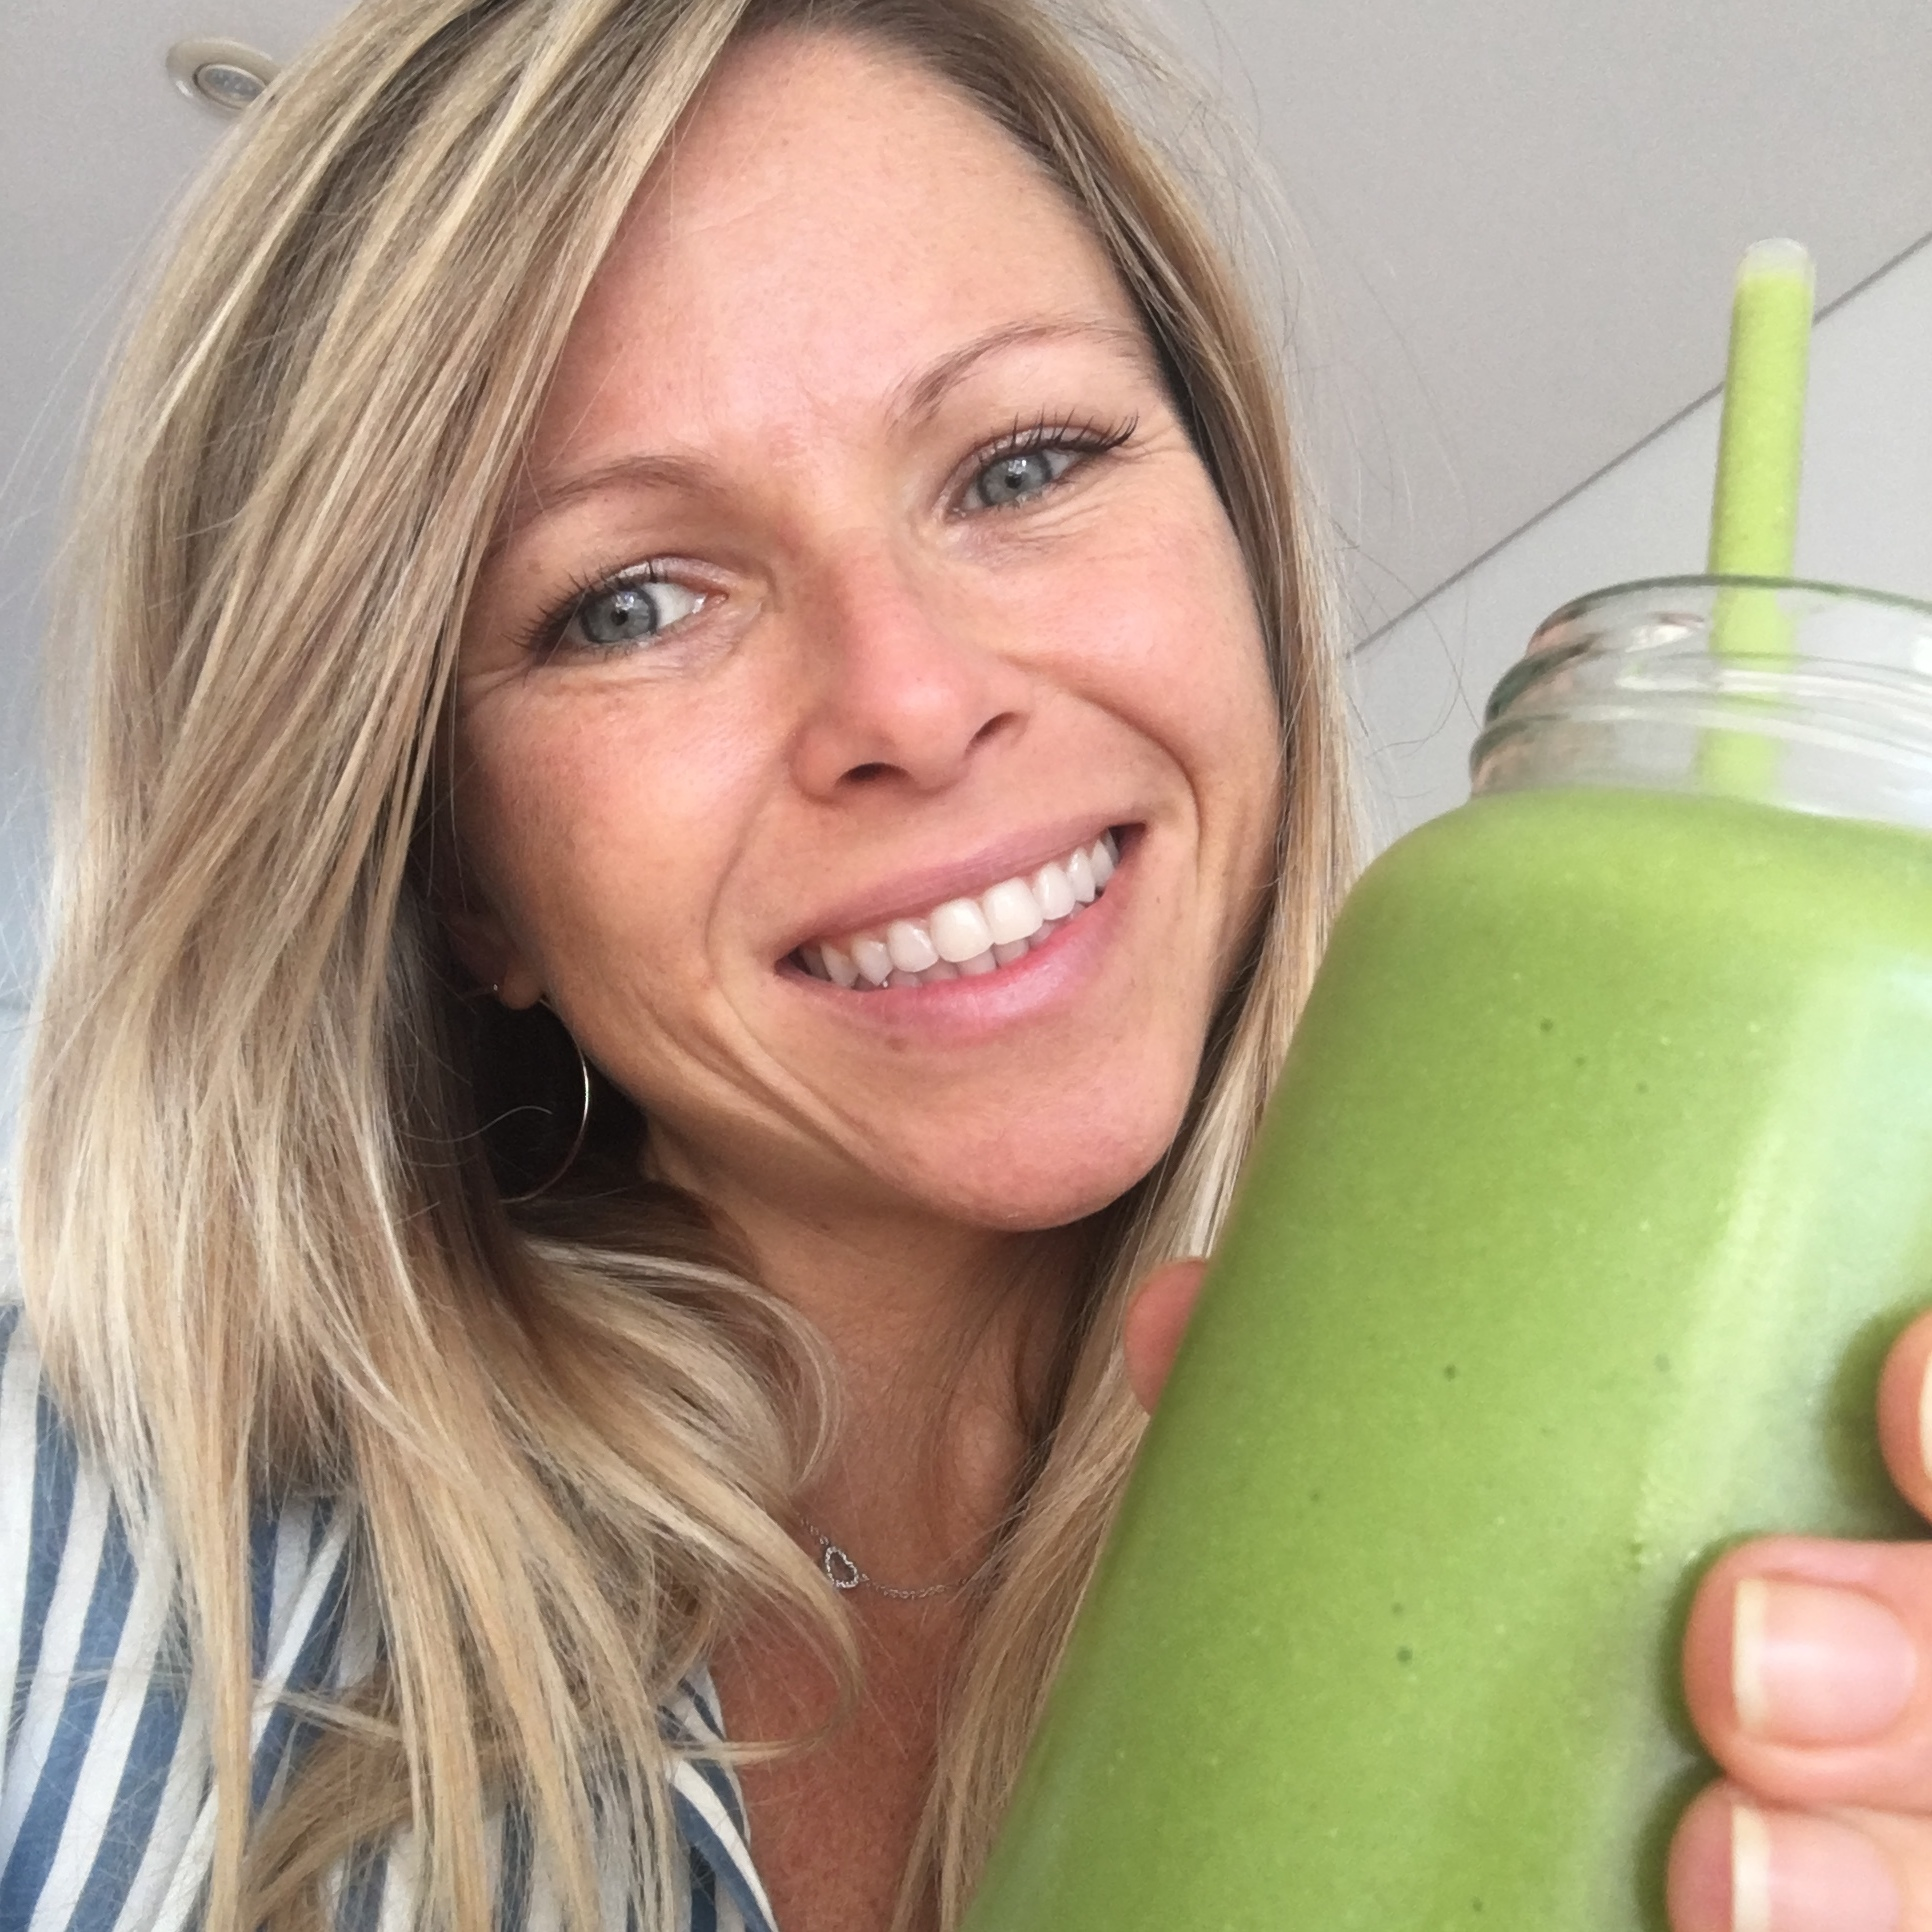 Filter-free selfie smoothie — I never know where to look for a selfie haha #feelgoodmovement #nofilter